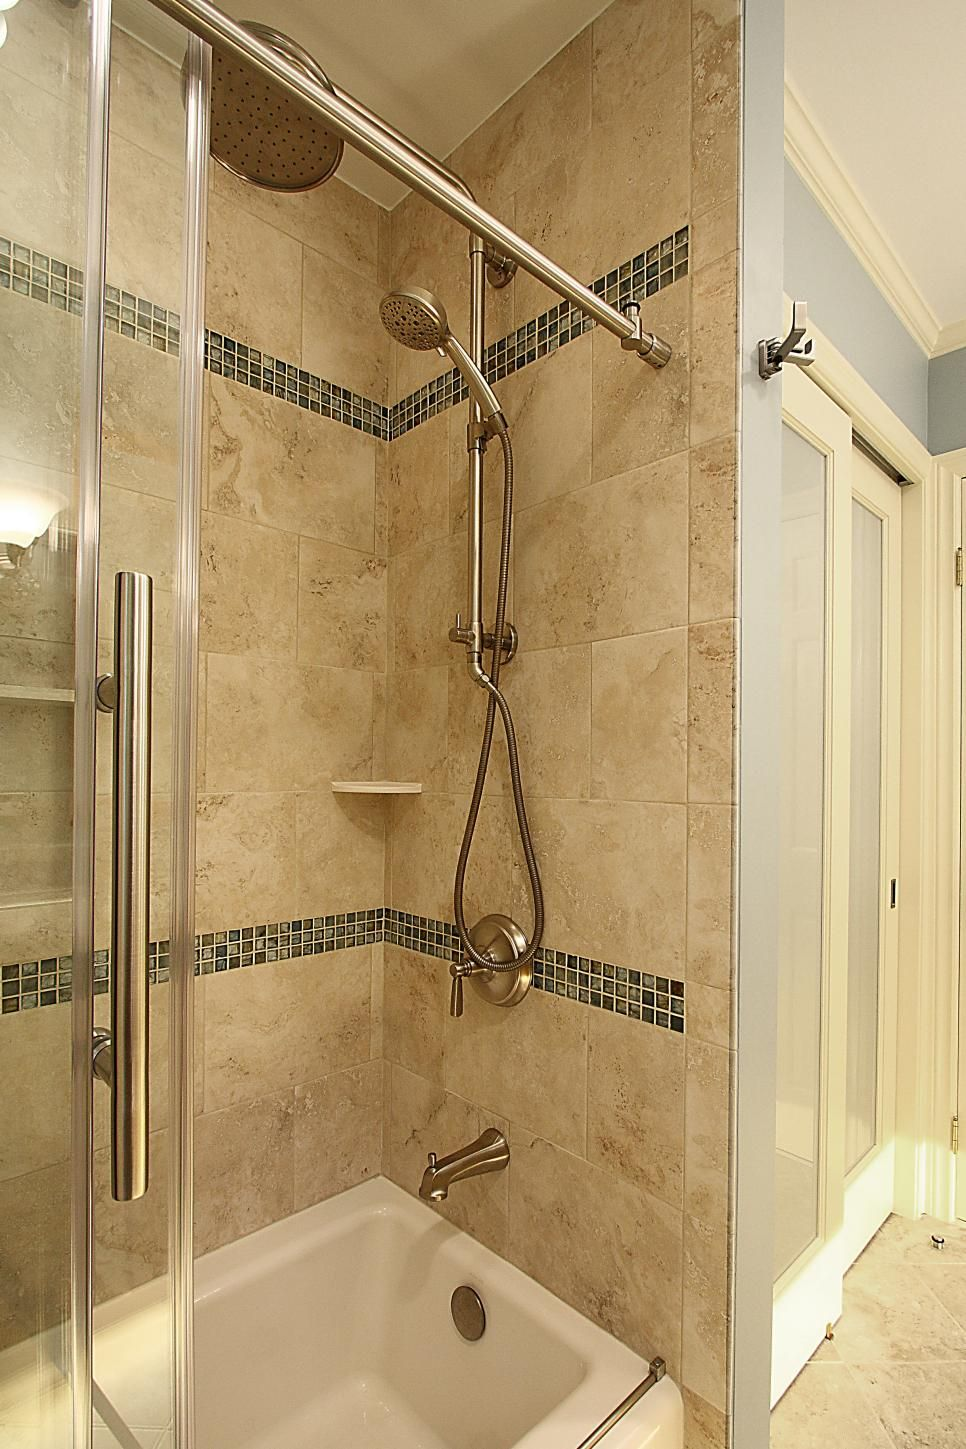 This bathroom remodel included a neutral tile shower paired with a